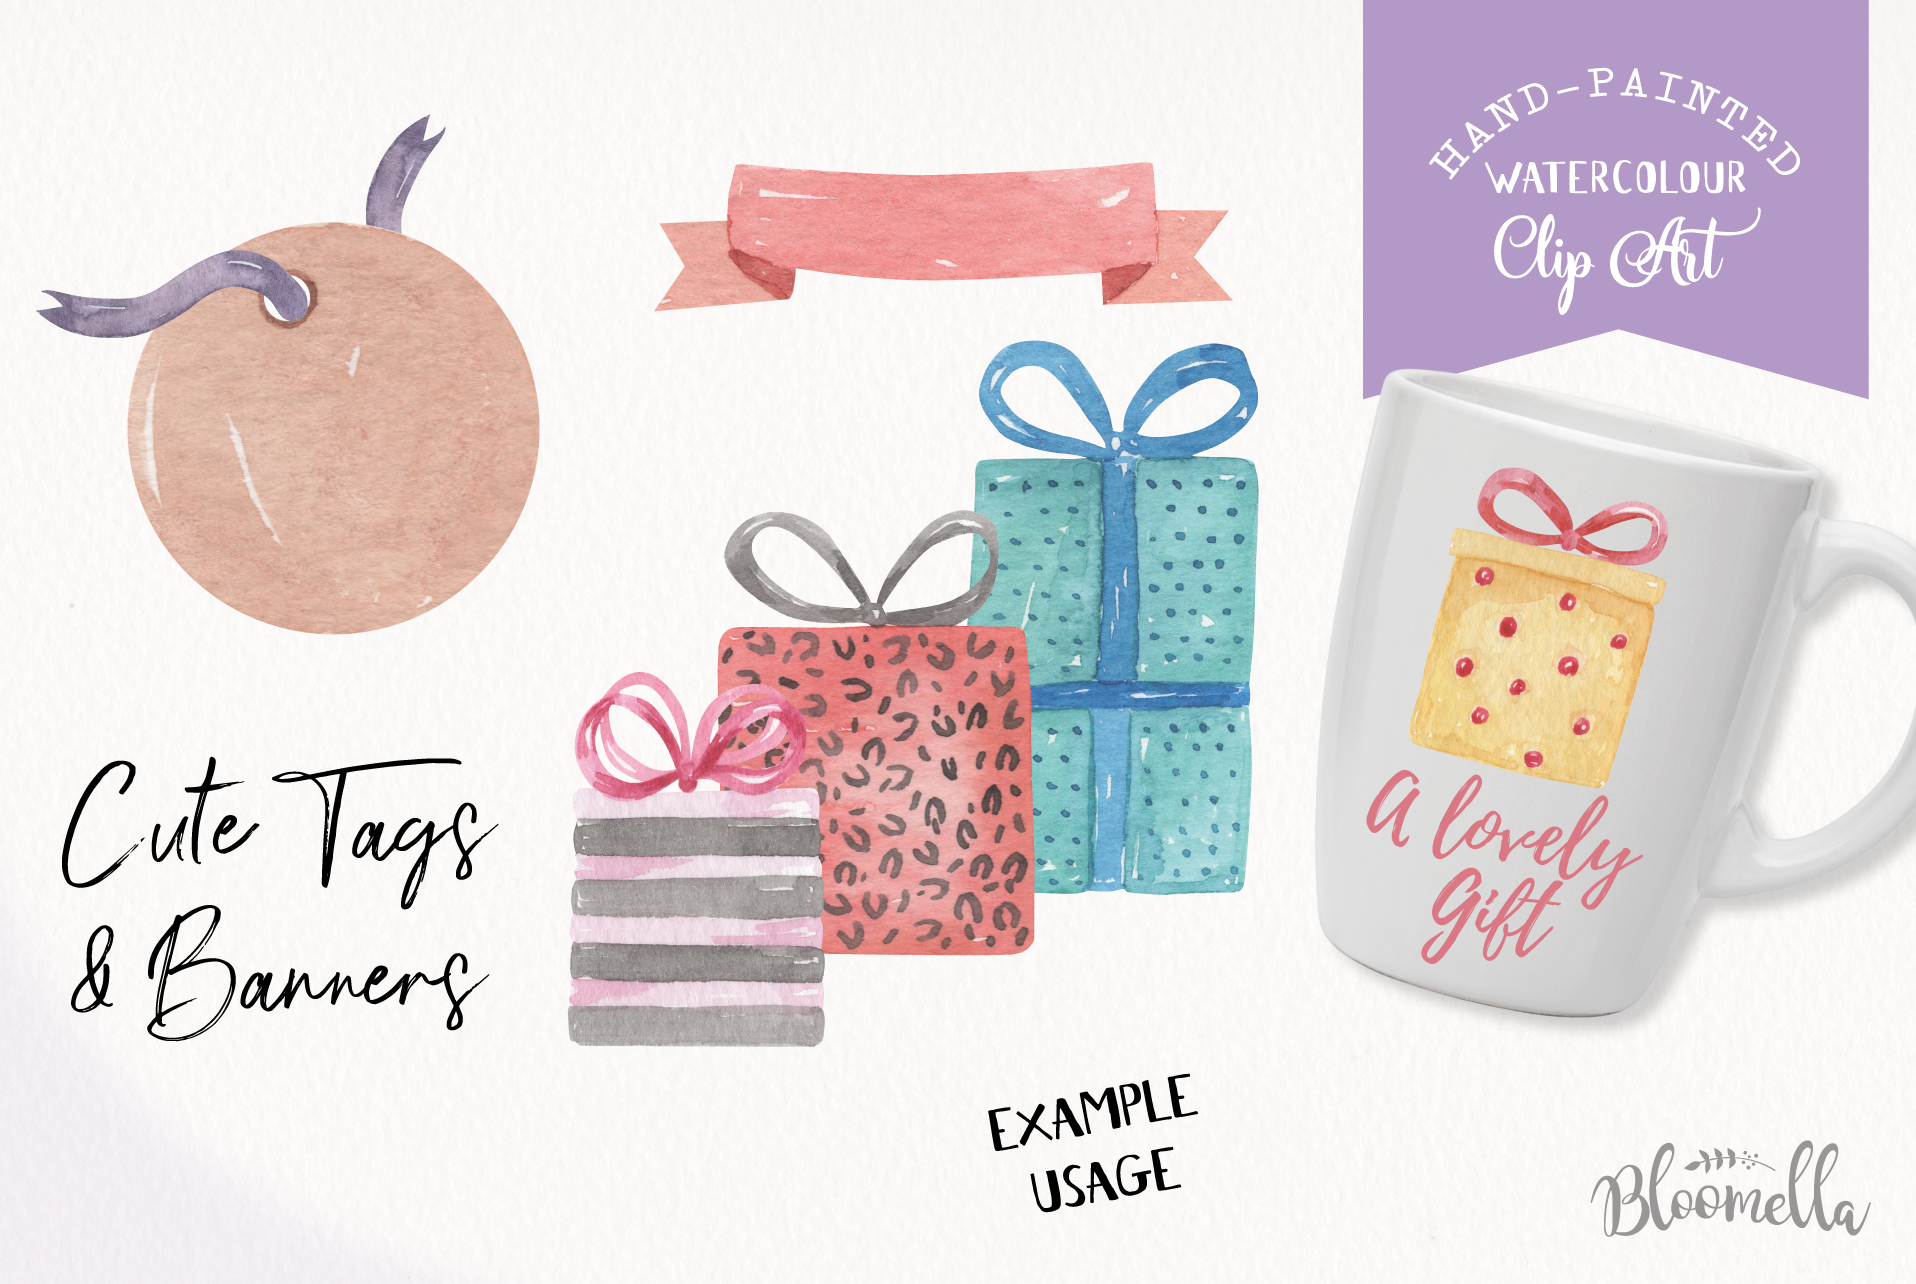 Watercolor Presents Gifts Clipart Elements Tags Banners Bows example image 6